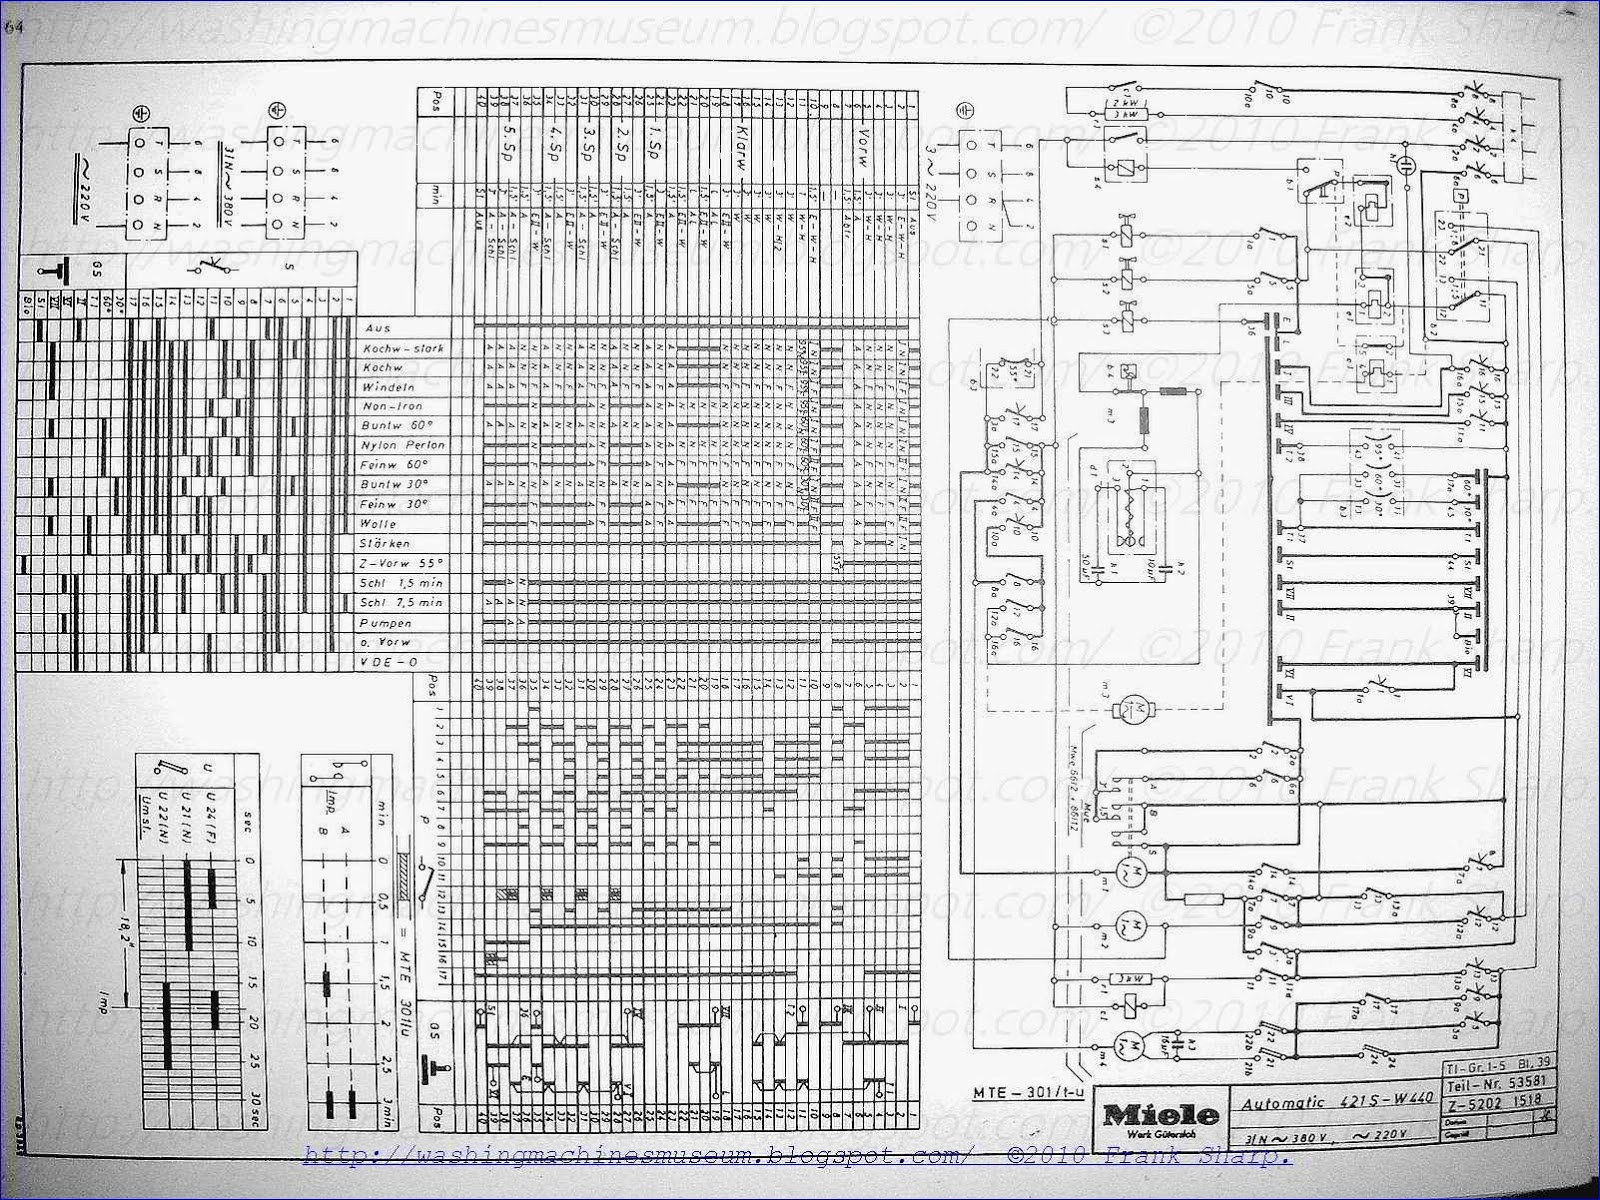 hight resolution of miele wiring diagram wiring librarymiele automatic 421s w440 timer holzer mte 301 t u schematic diagram